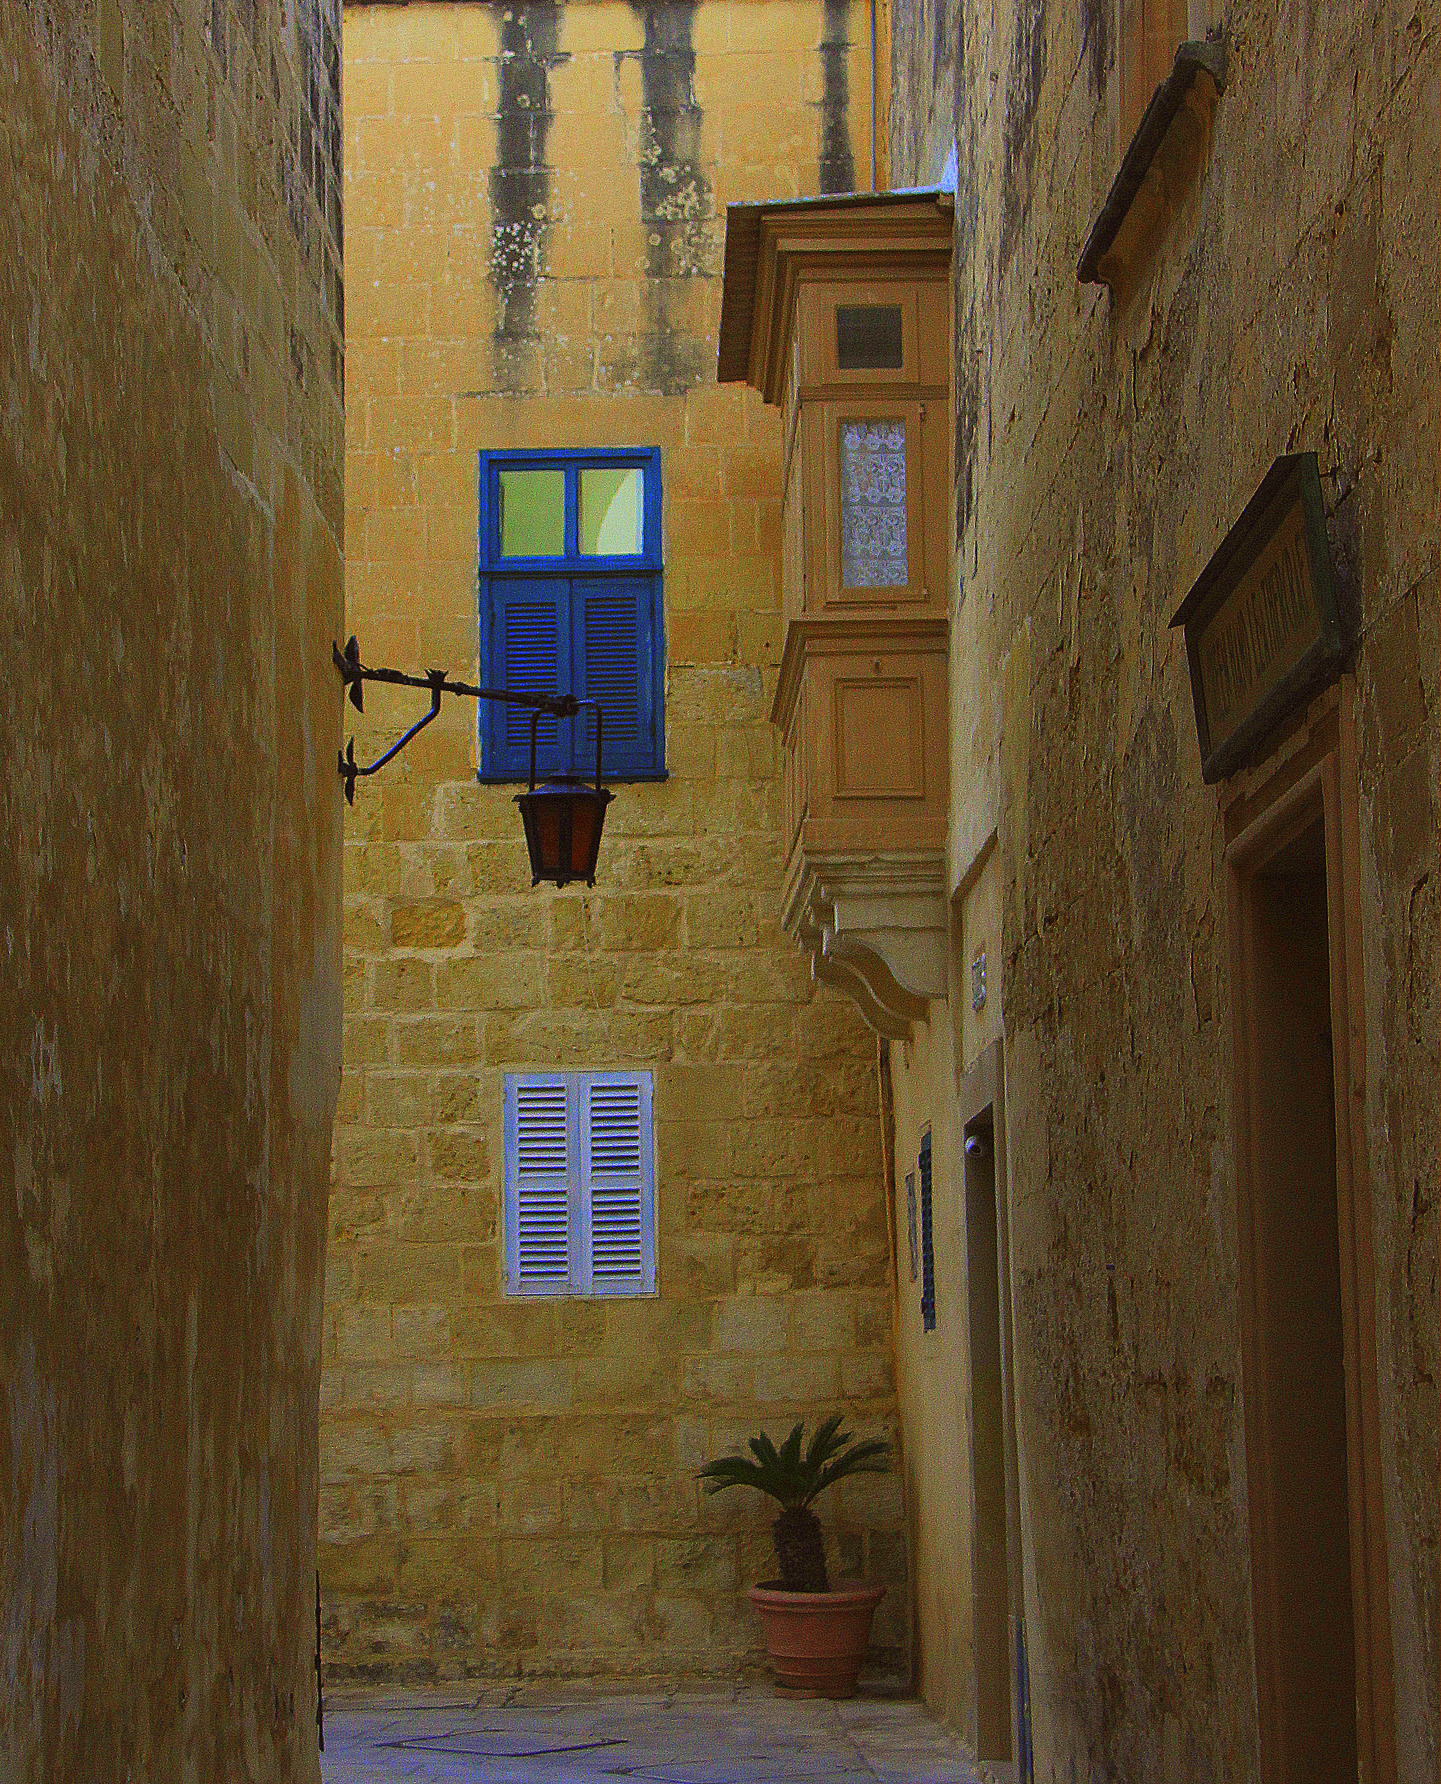 Mdina was overlooked by the Knights of Malta